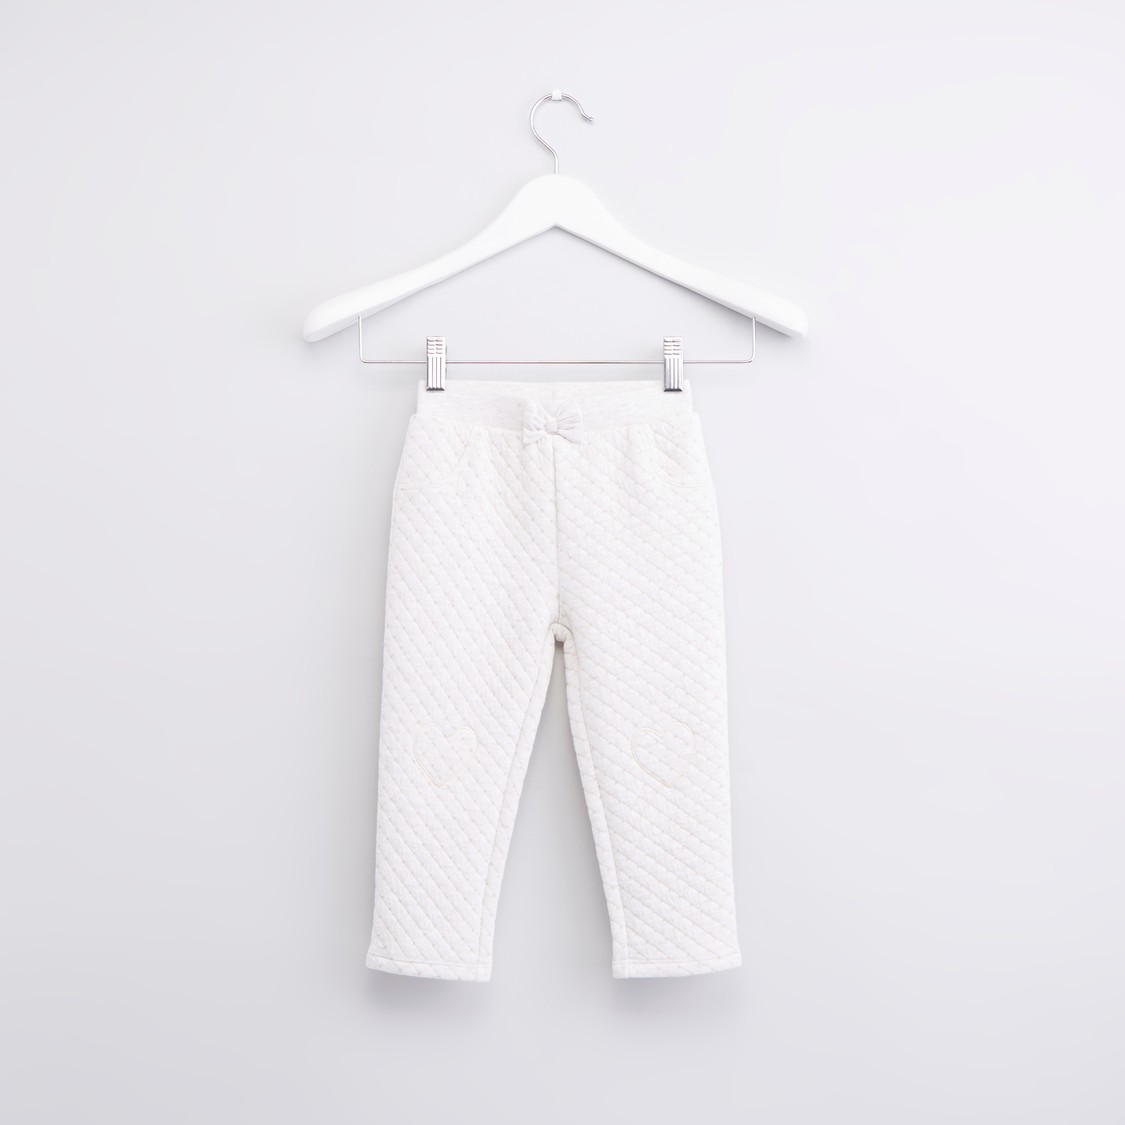 Textured Pants with Elasticised Waistband and Bow Detail